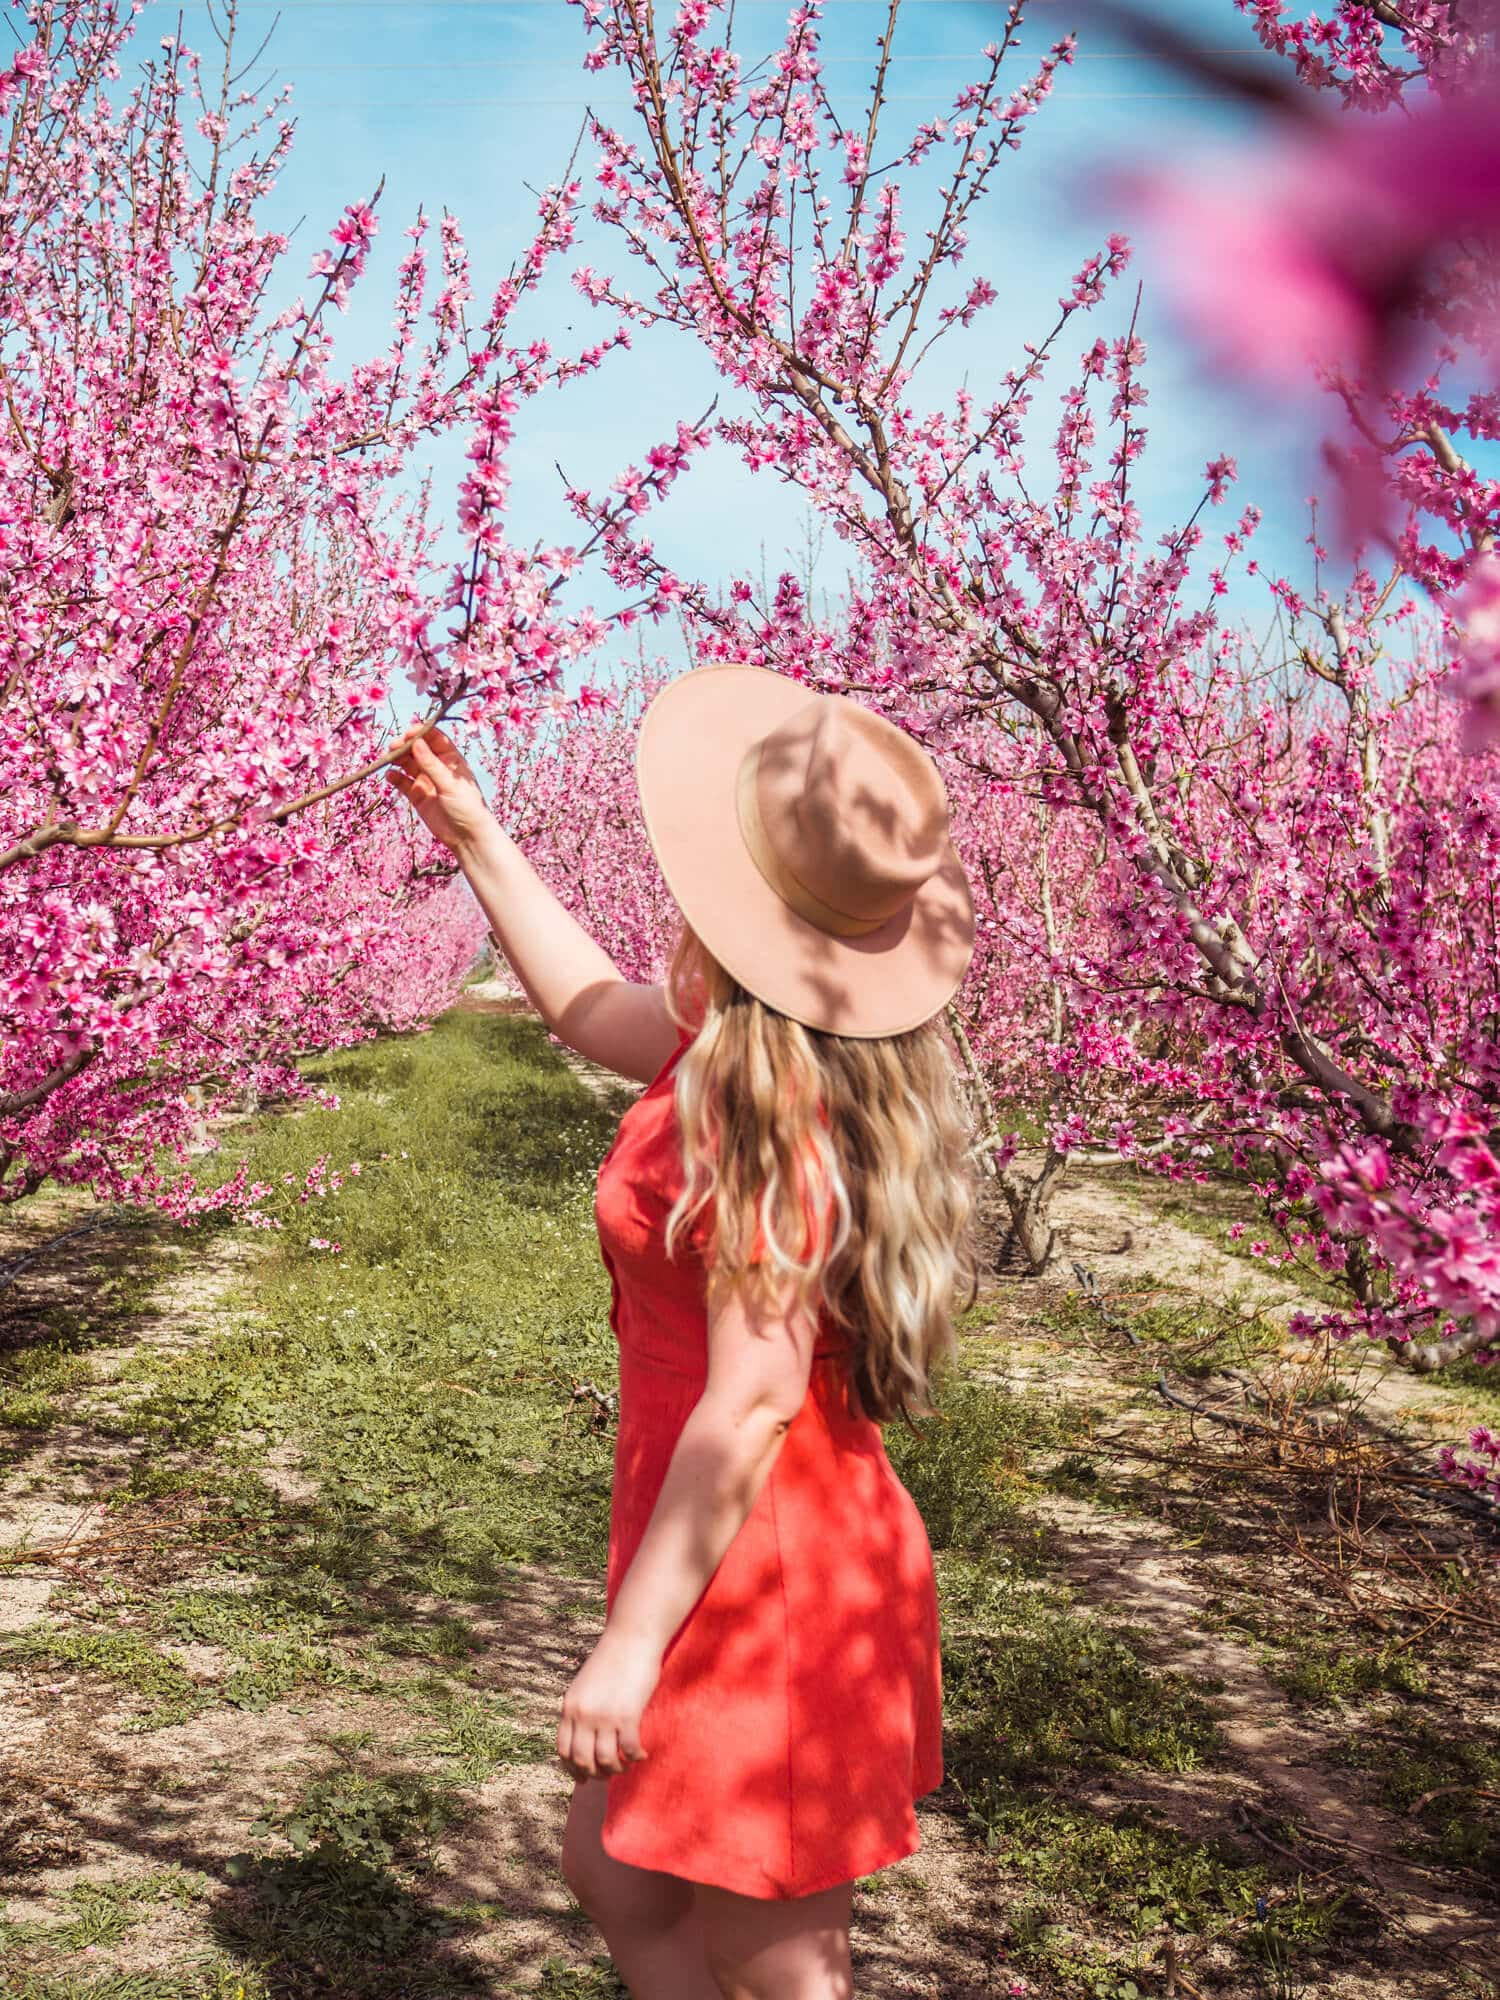 Smelling the sweet peach tree blossoms at Floración de Cieza in Murcia, Spain